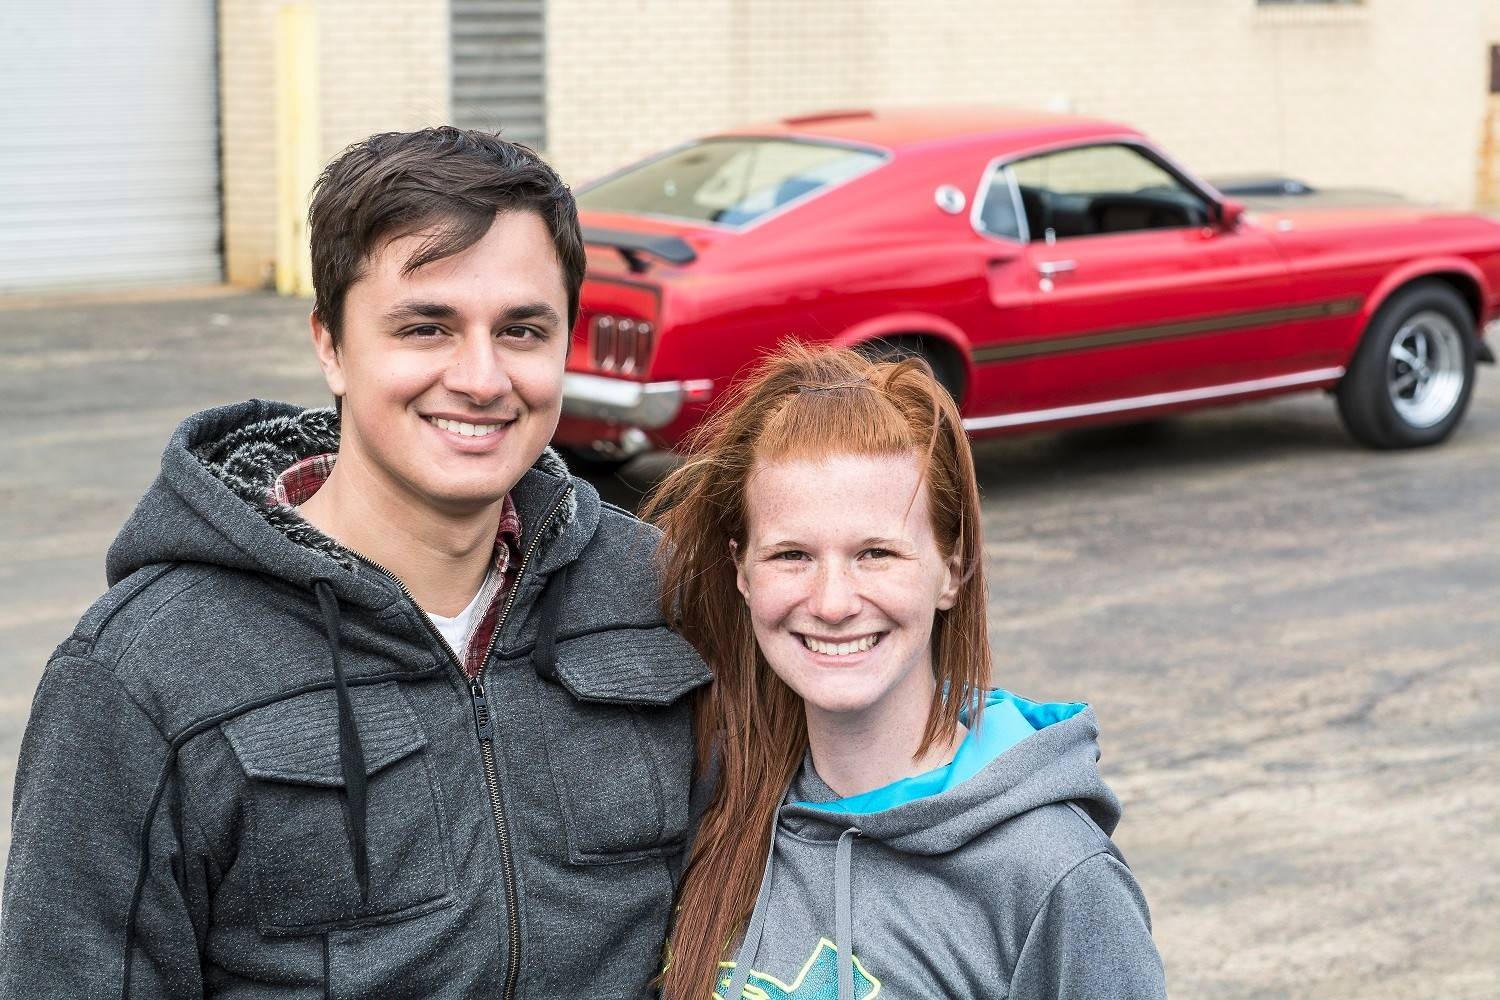 Monico Chavez of Vernon Hills and his girlfriend, Emily Grimm, enjoy cruising in his 1969 Mach 1.